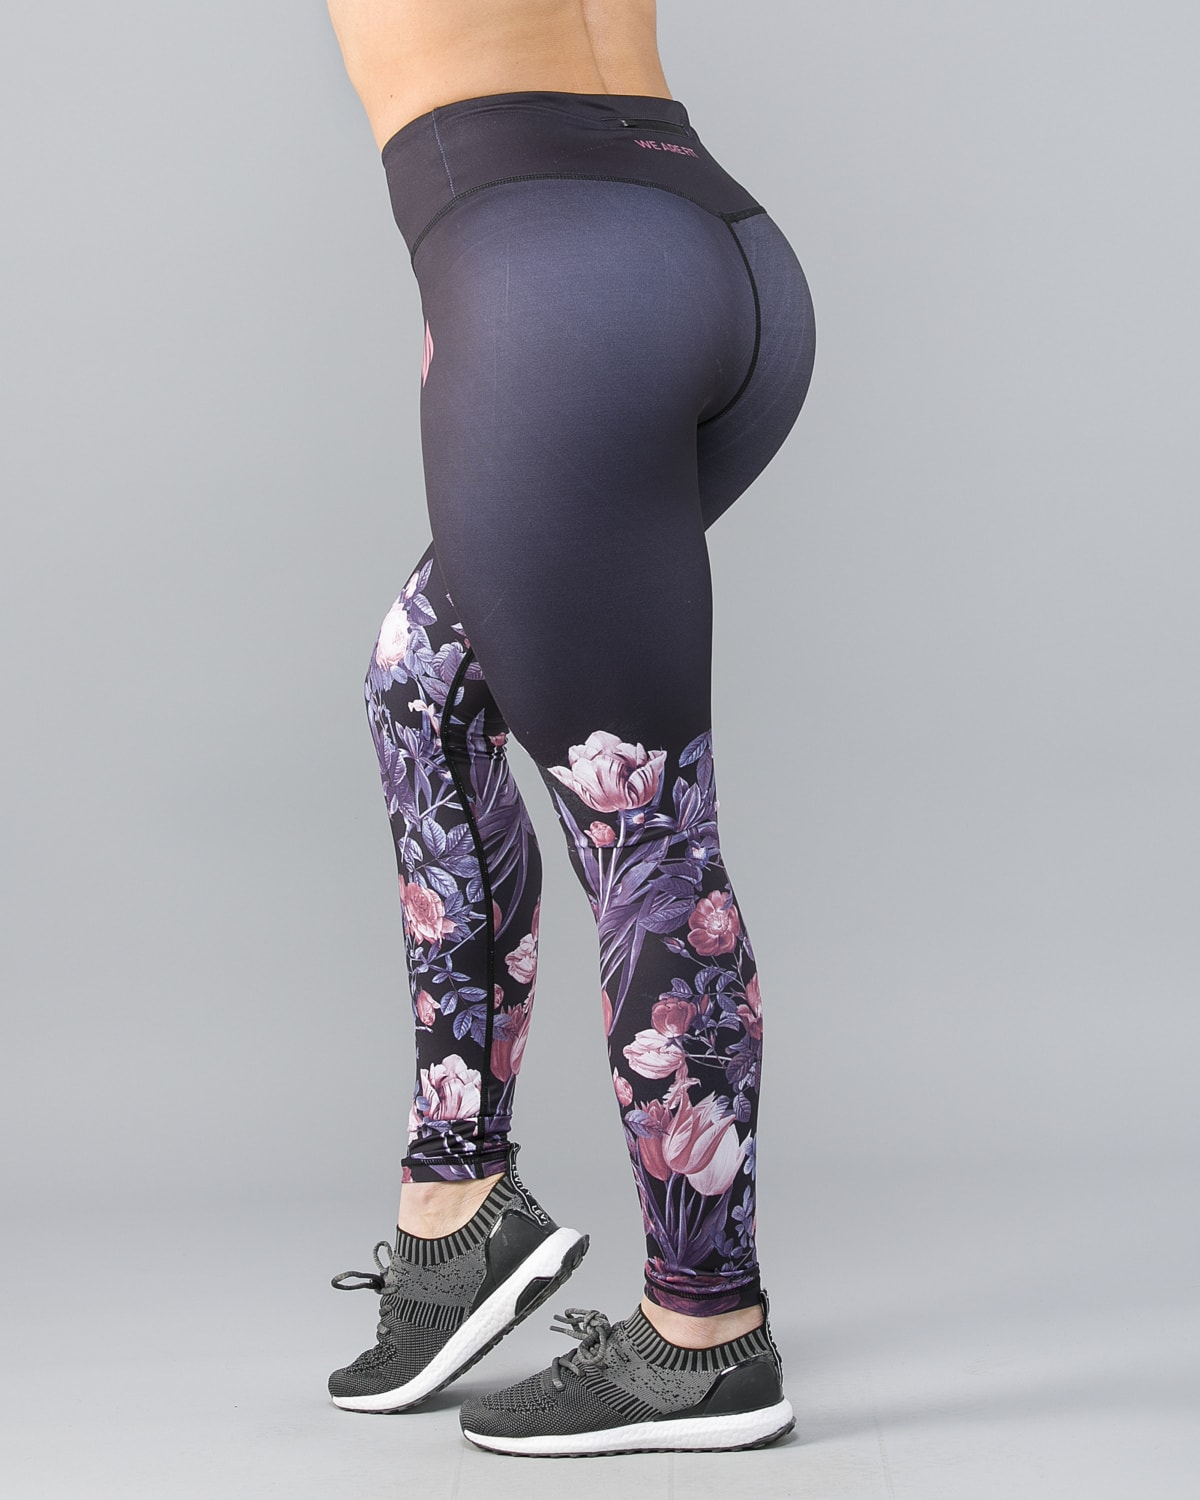 We-Are-Fit-Shea-Tights1